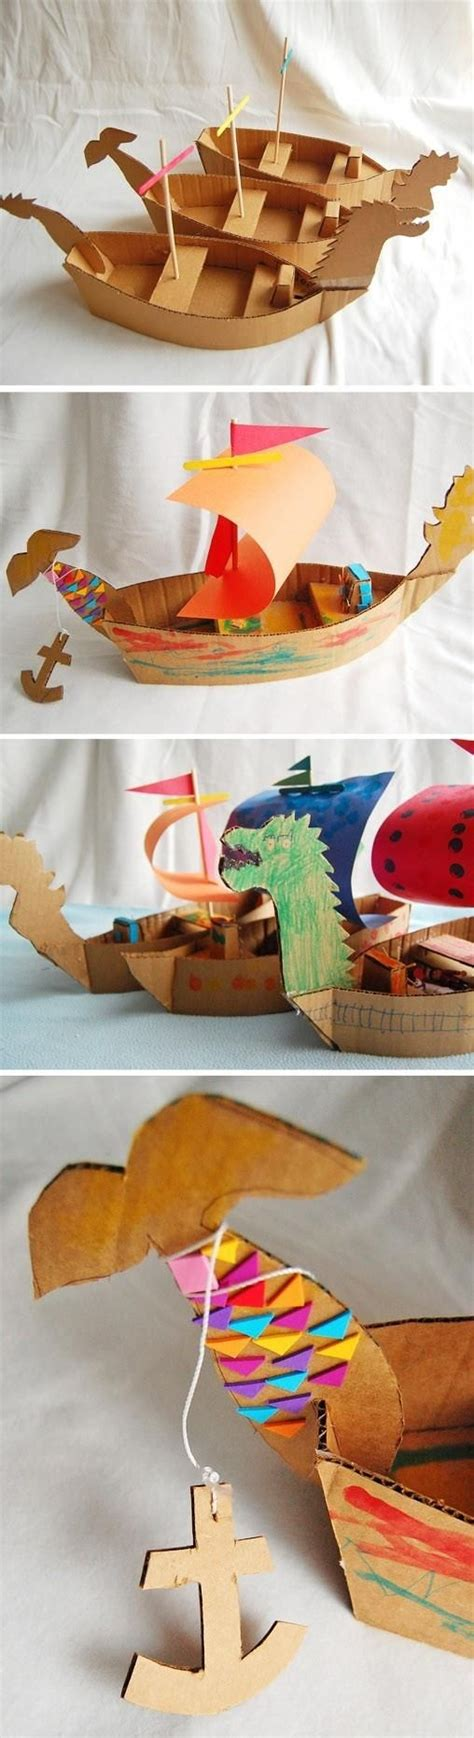 ideas for craft 17 best images about conquistador projects on 4740